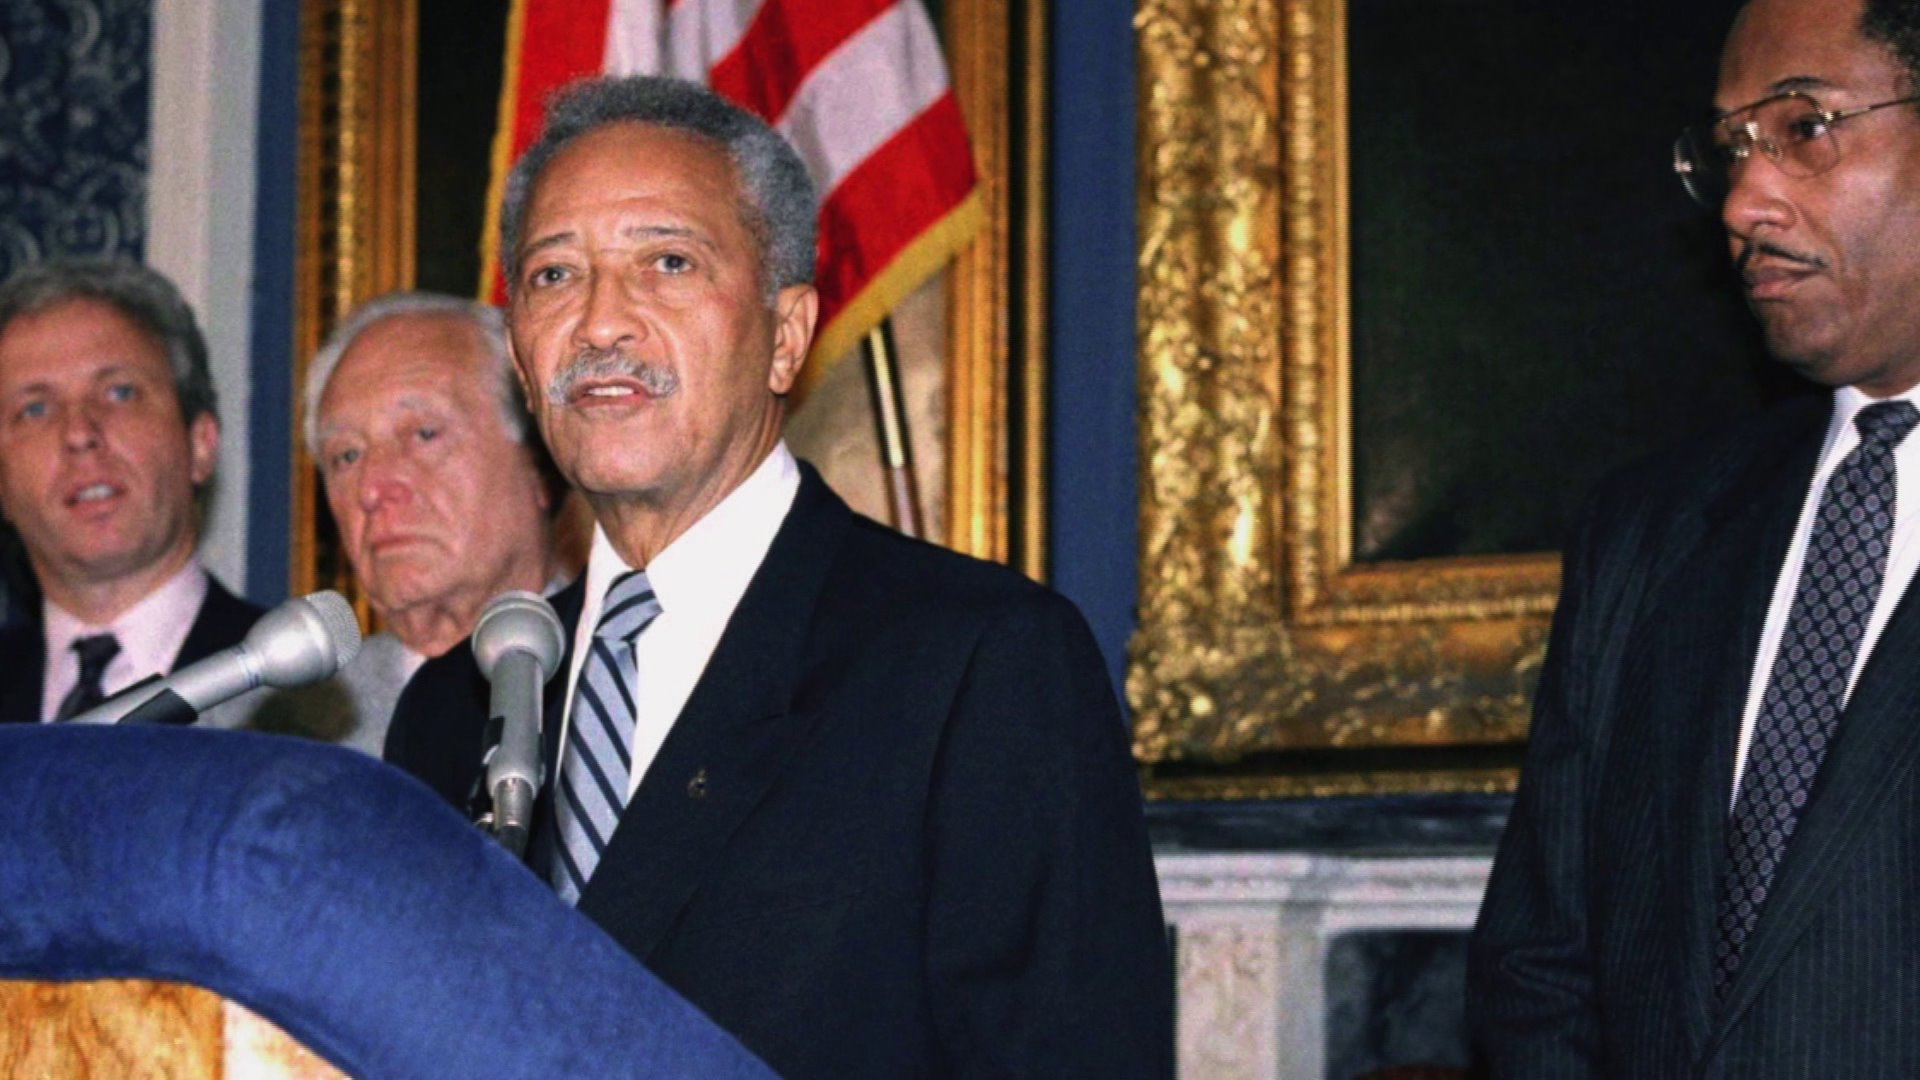 cigfcxxckphtxm https www pix11 com news local news remembering david dinkins al sharpton and officials react to death of former nyc mayor